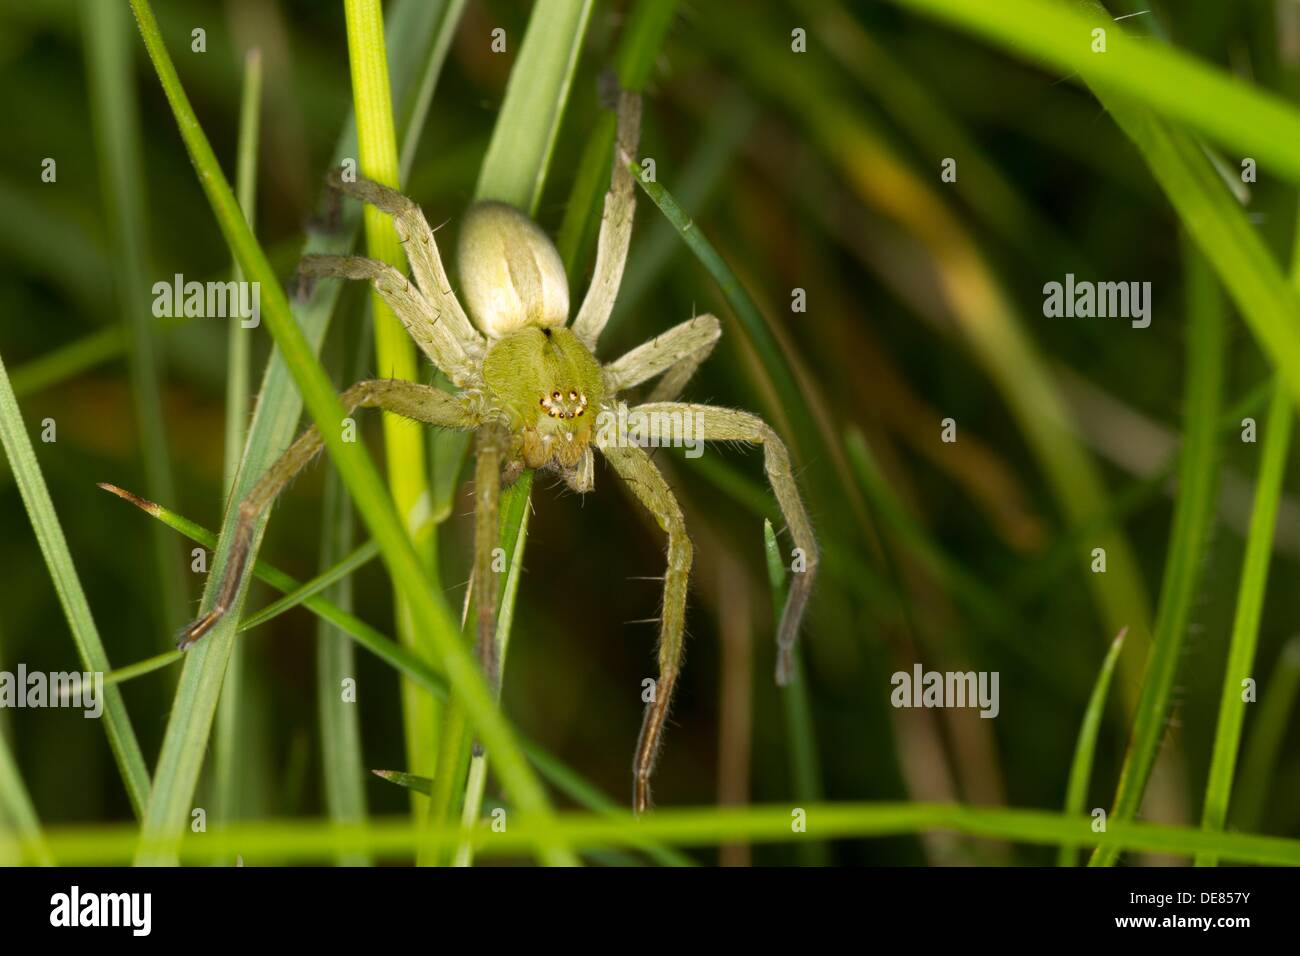 Micrommata ligurinum, South of France. - Stock Image